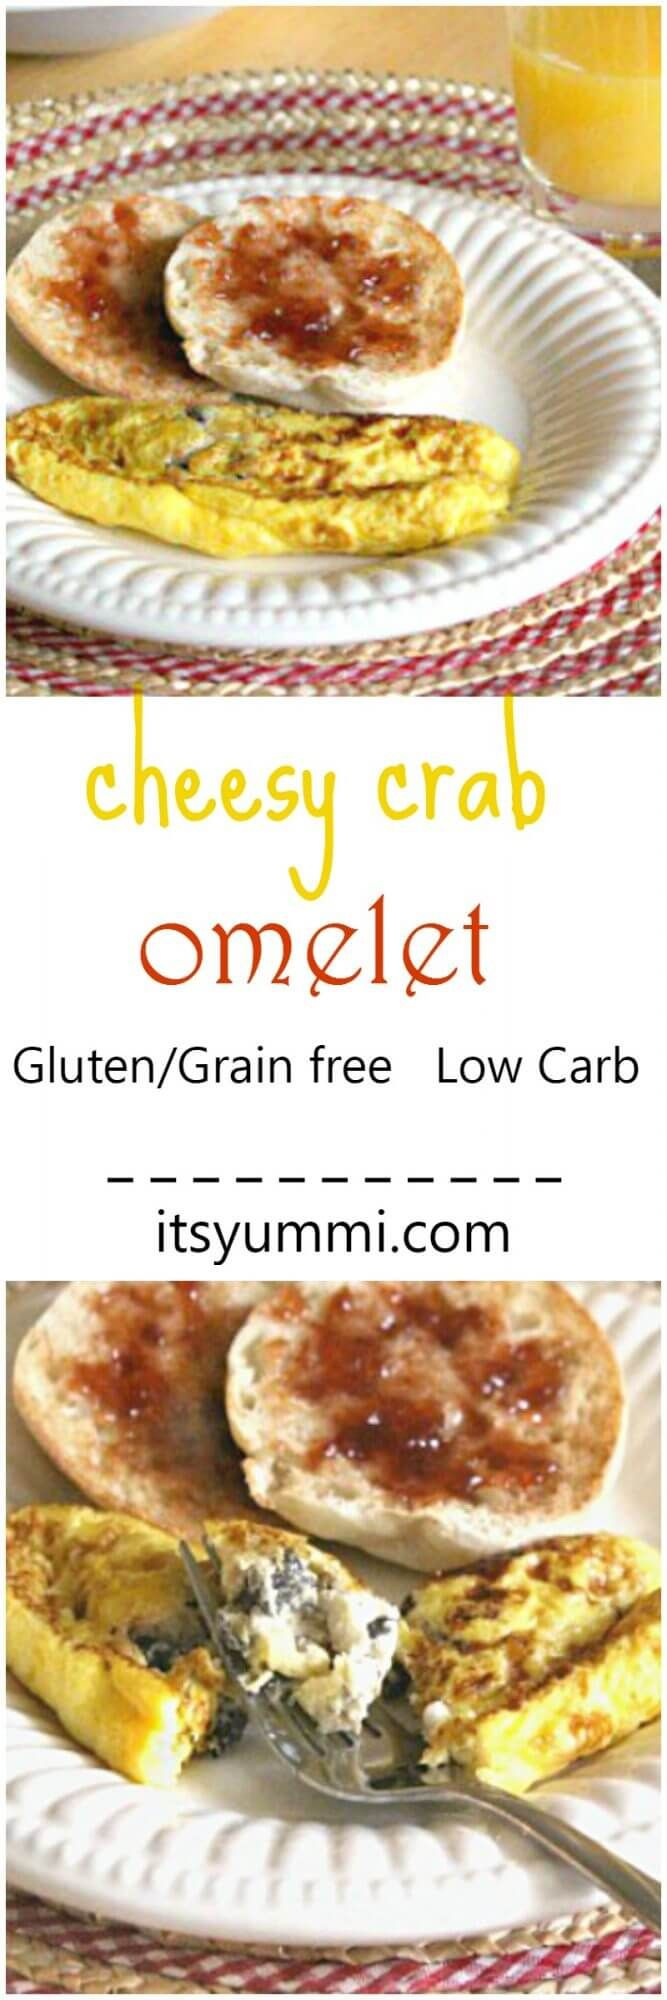 Cheesy Crab Omelet Recipe - Perfect for breakfast or brunch, this easy-to-make omelet is loaded with veggies, 2 types of cheese, and flaky crab meat. SO good! - Recipe on itsyummi.com